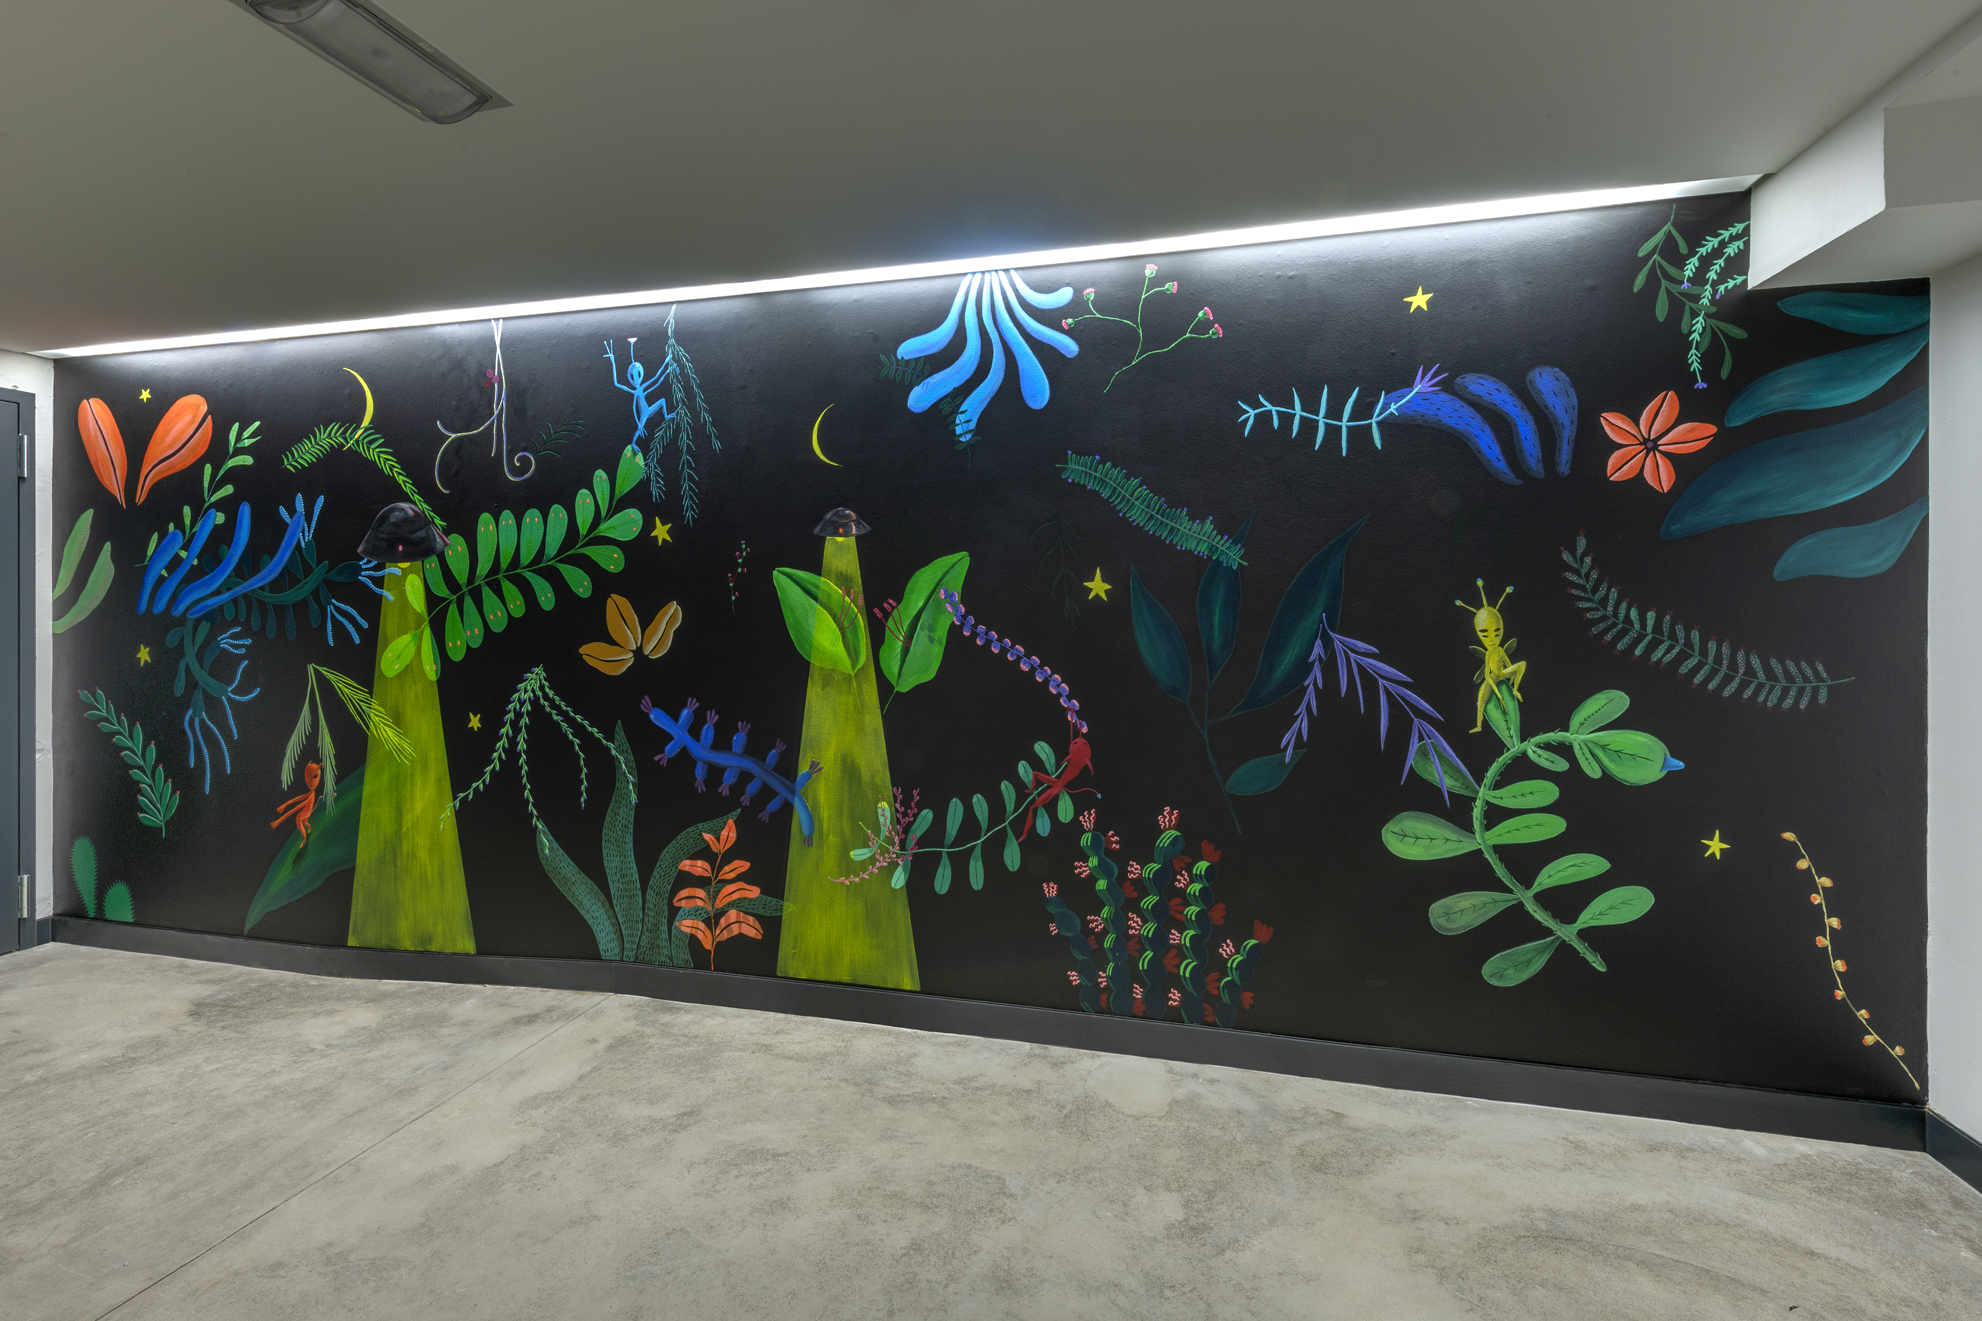 night life,   gaëtan henrioux,  acrylic on concrete, 2,30x6,05m   photo credits: charles duprat